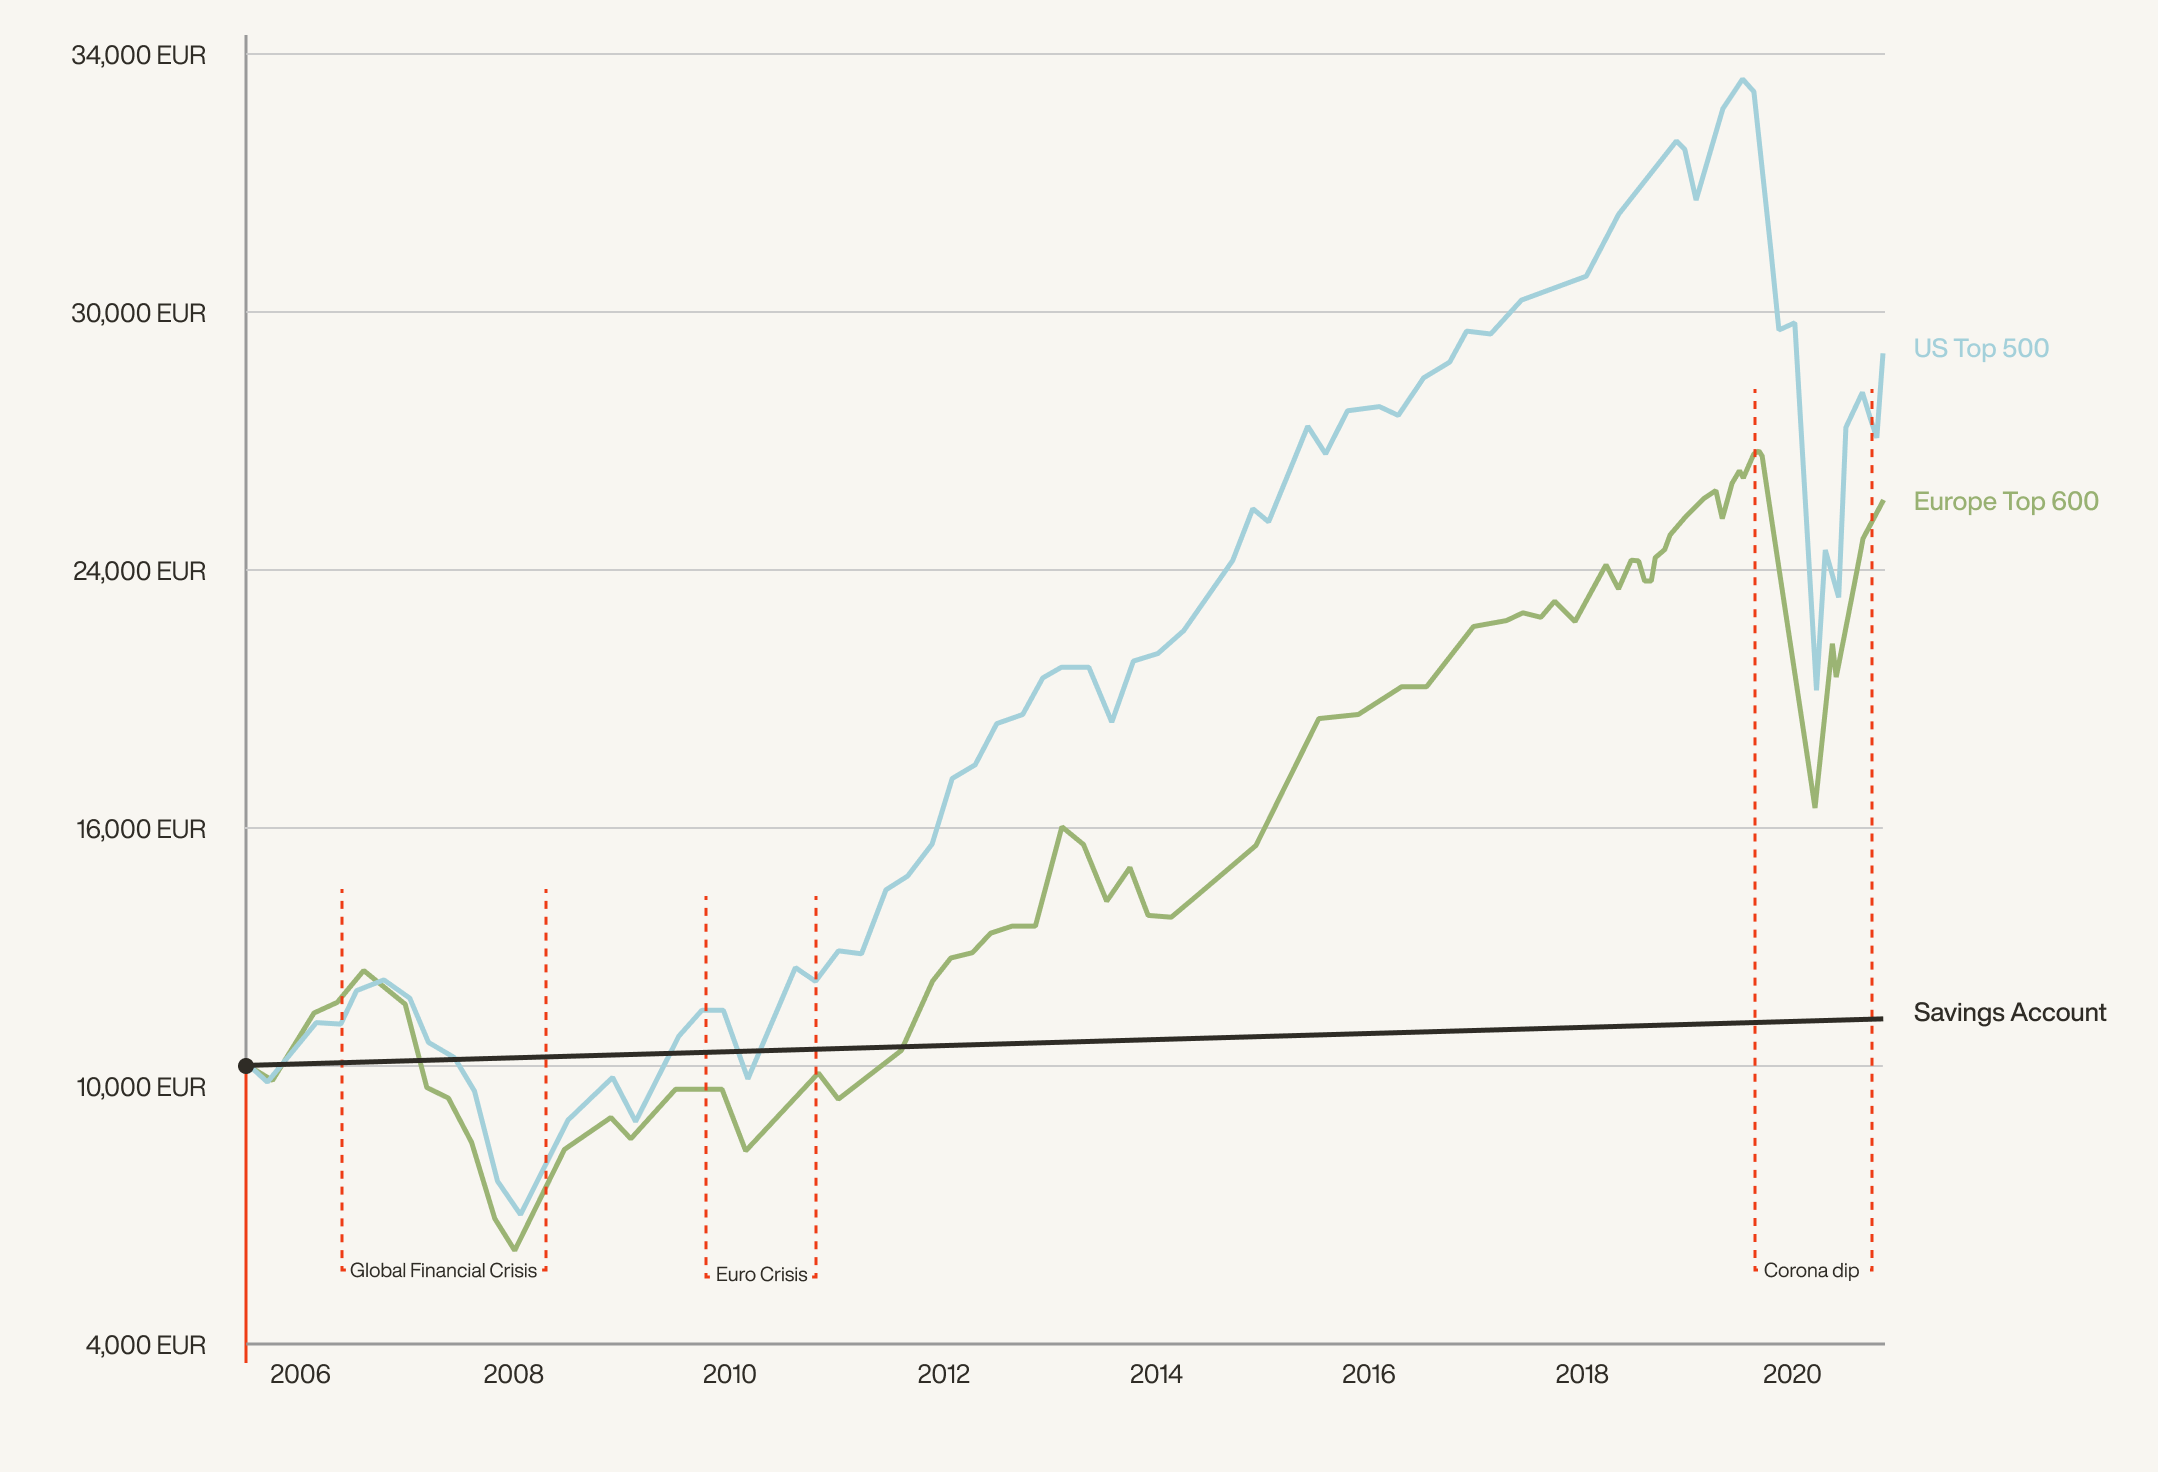 Illustration of stock market performance over time